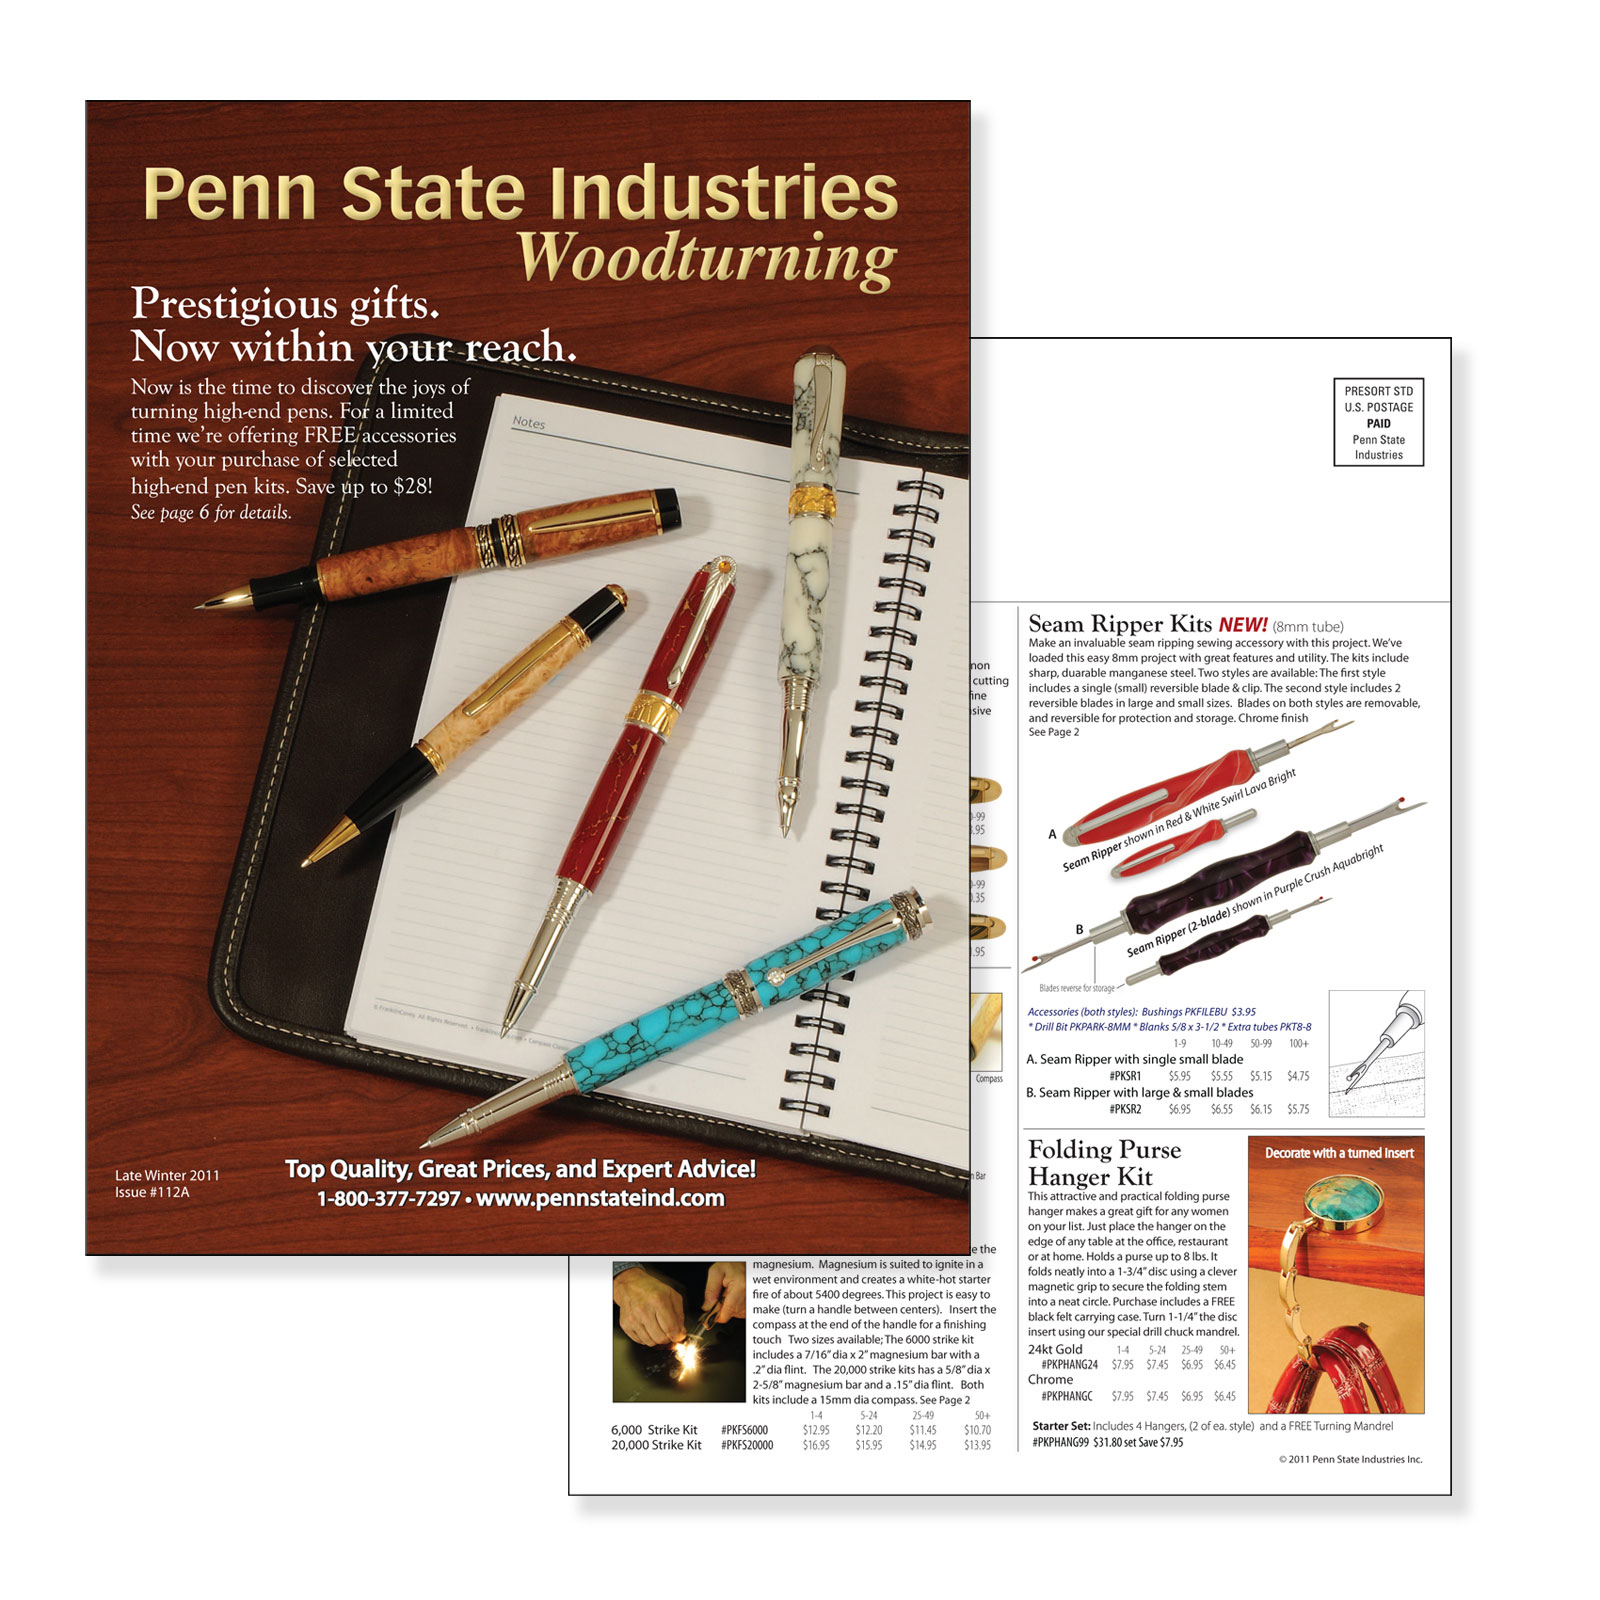 Family owned and operated since , Penn State Industries has been assisting woodturners across the country for decades. When you want the best value, service and selection shop kinoframe.ga or call to place an order or to request a free catalog or free Pen Making DVD.